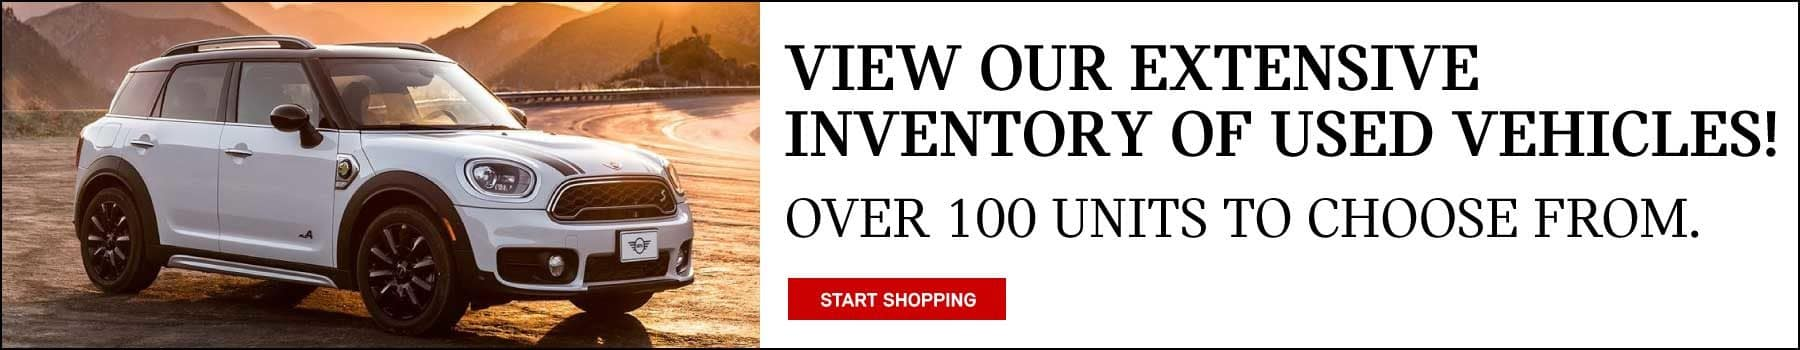 VIEW OUR EXTENSIVE INVENTORY OF USED VEHICLES! OVER 100 UNITS TO CHOOSE FROM . START SHOPPING BUTTON.